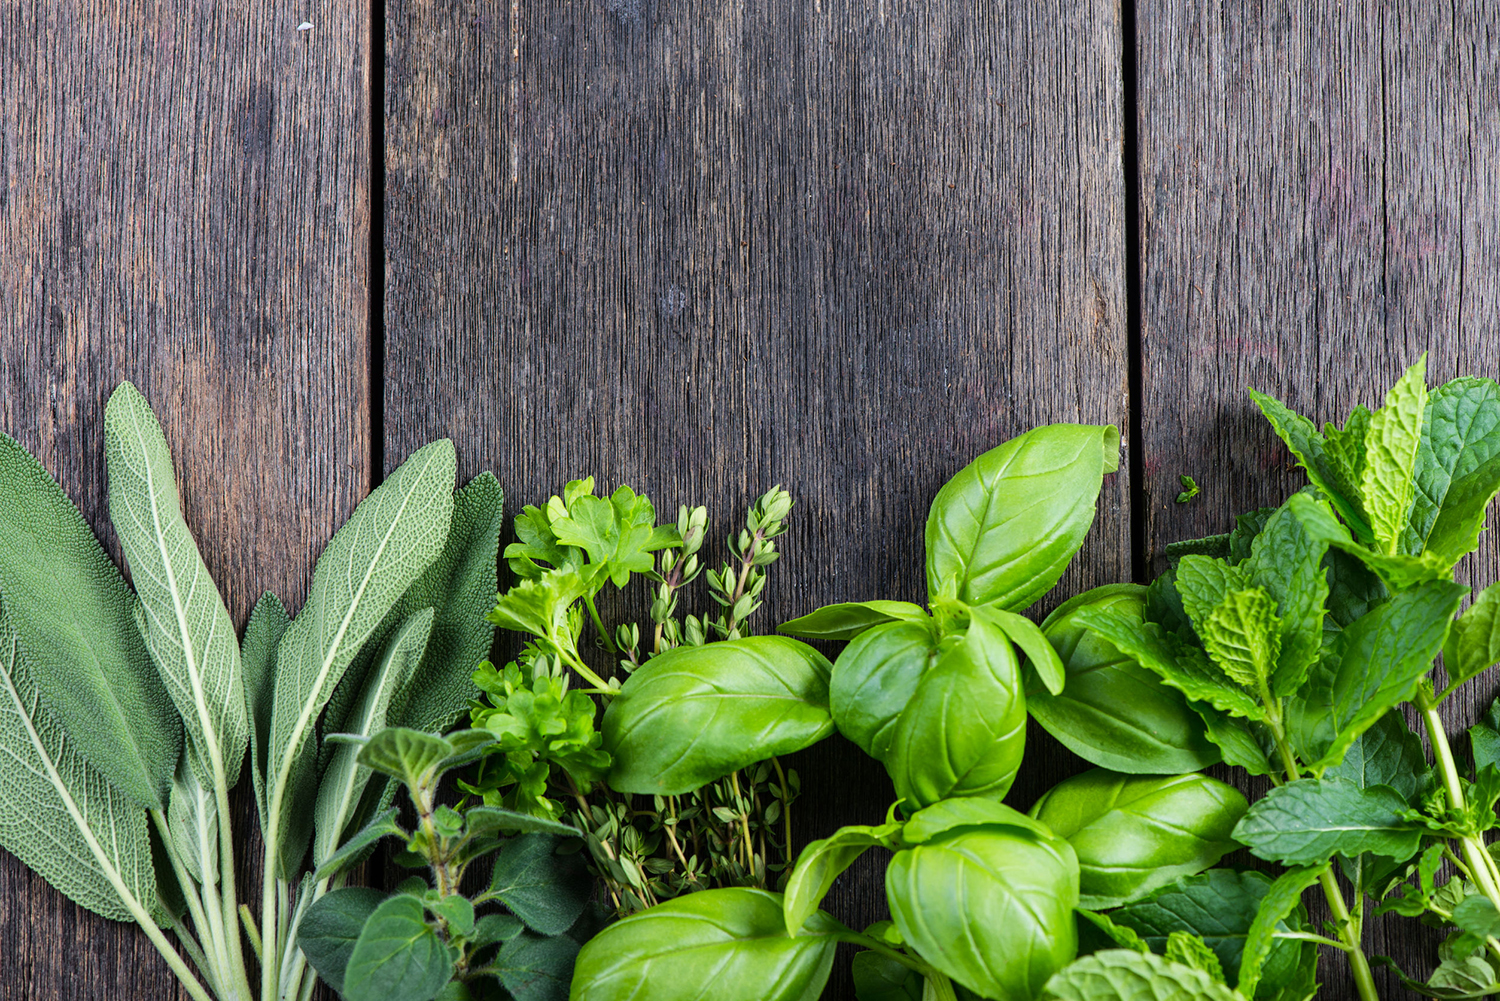 Peculiar How To Grow Herbs Spices S Clickhowto Growing Cilantro S Spices S How To Grow Herbs Containers S Winter Growing Cilantro houzz-03 Growing Cilantro Indoors